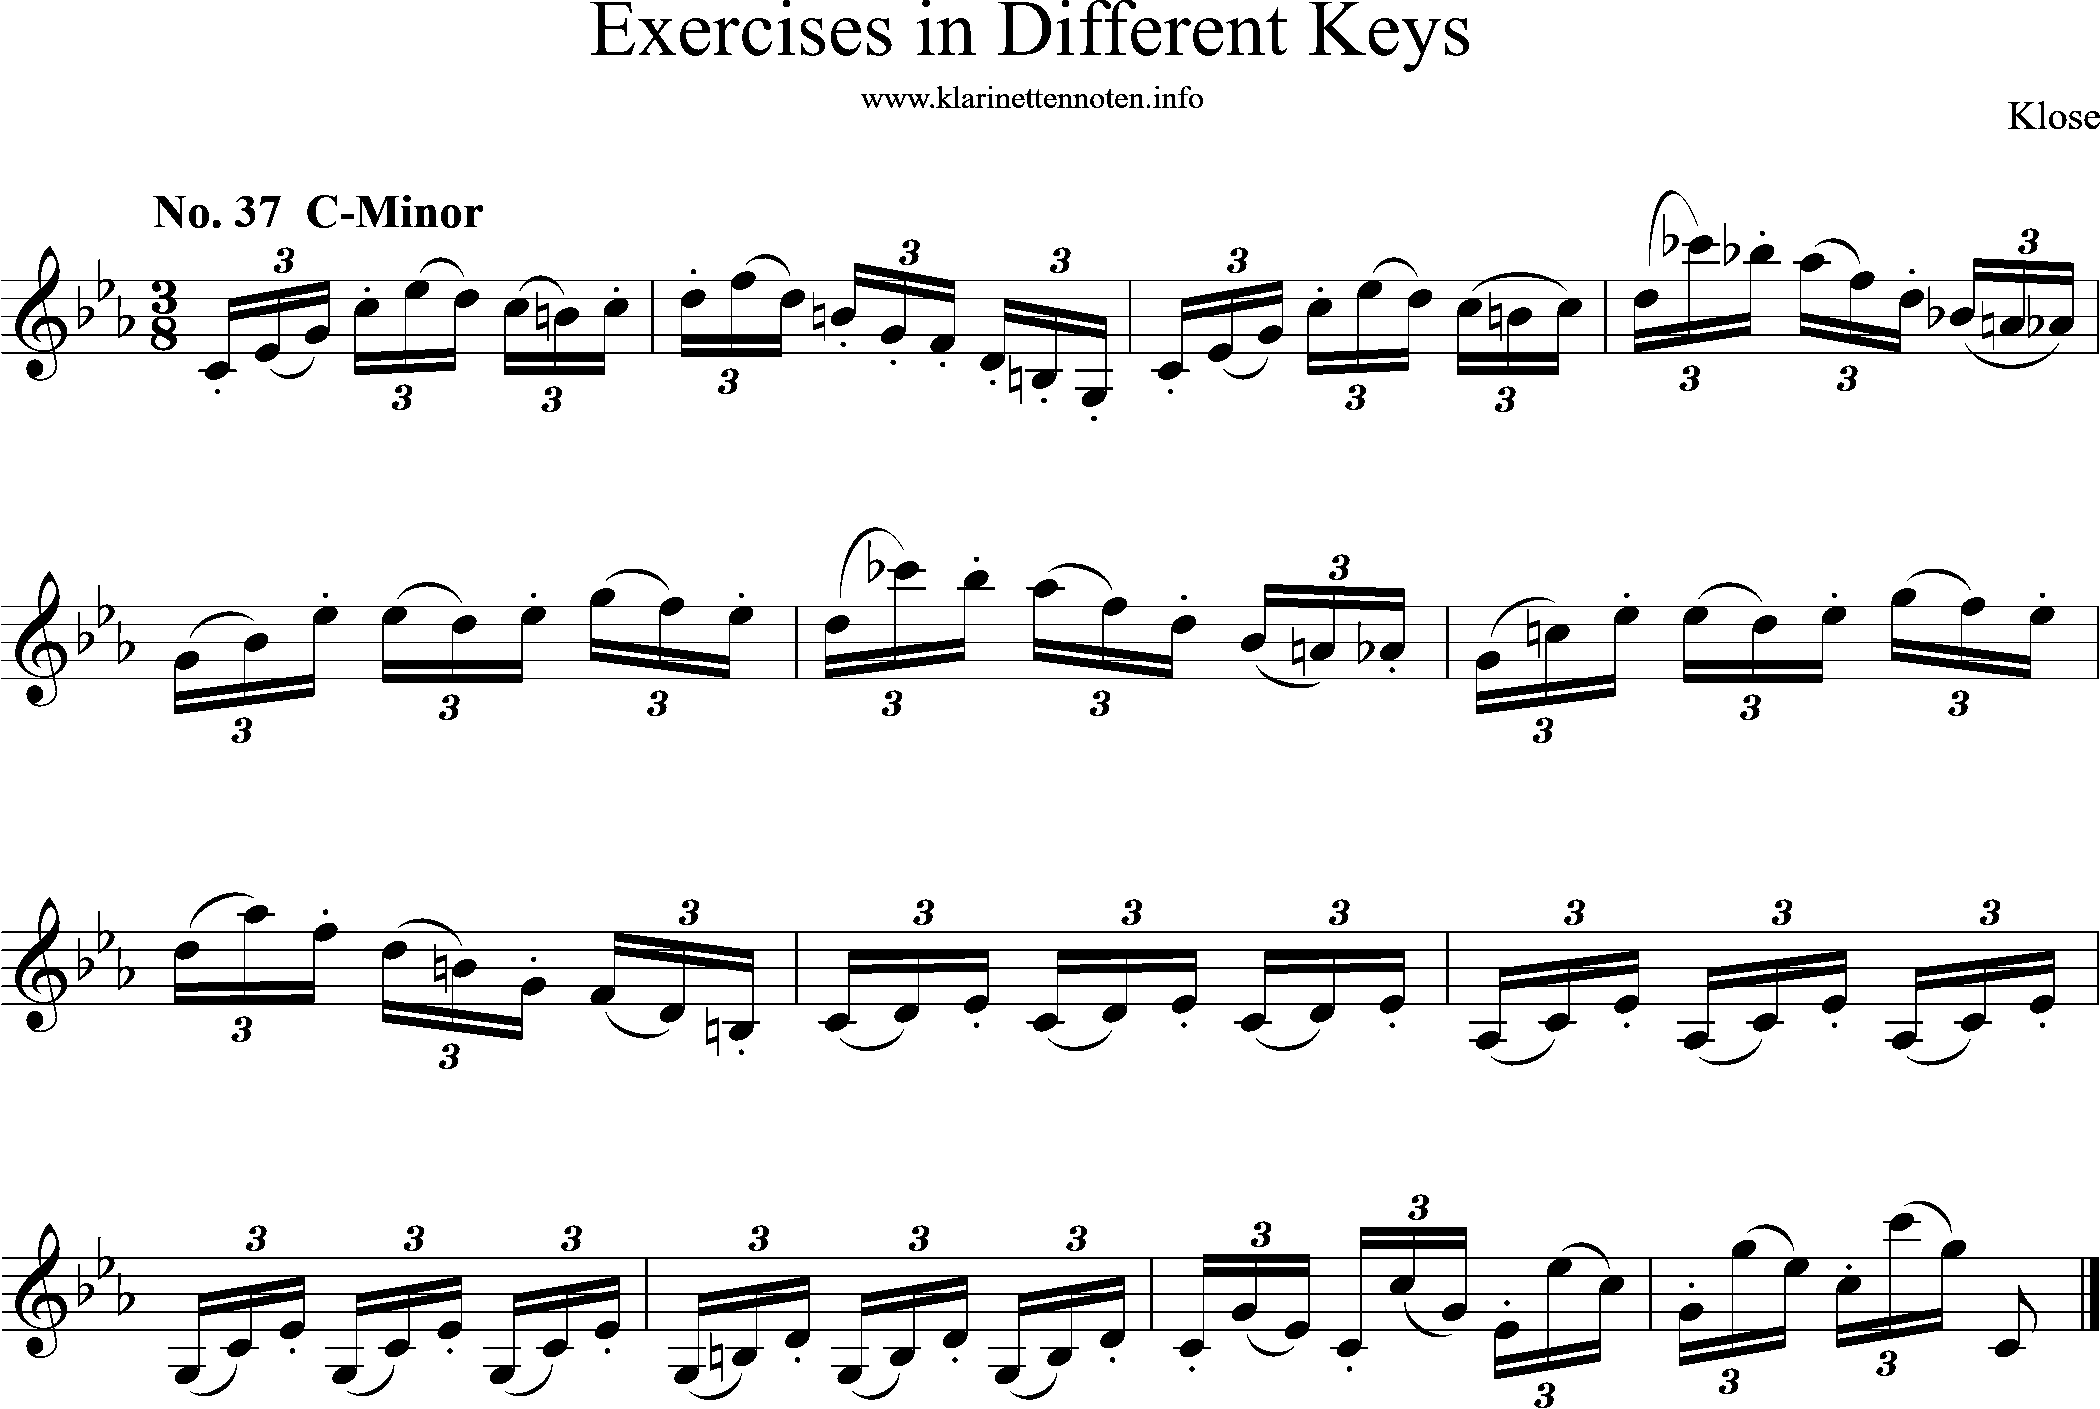 Exercises in Differewnt Keys, klose, No-37, C-Minor